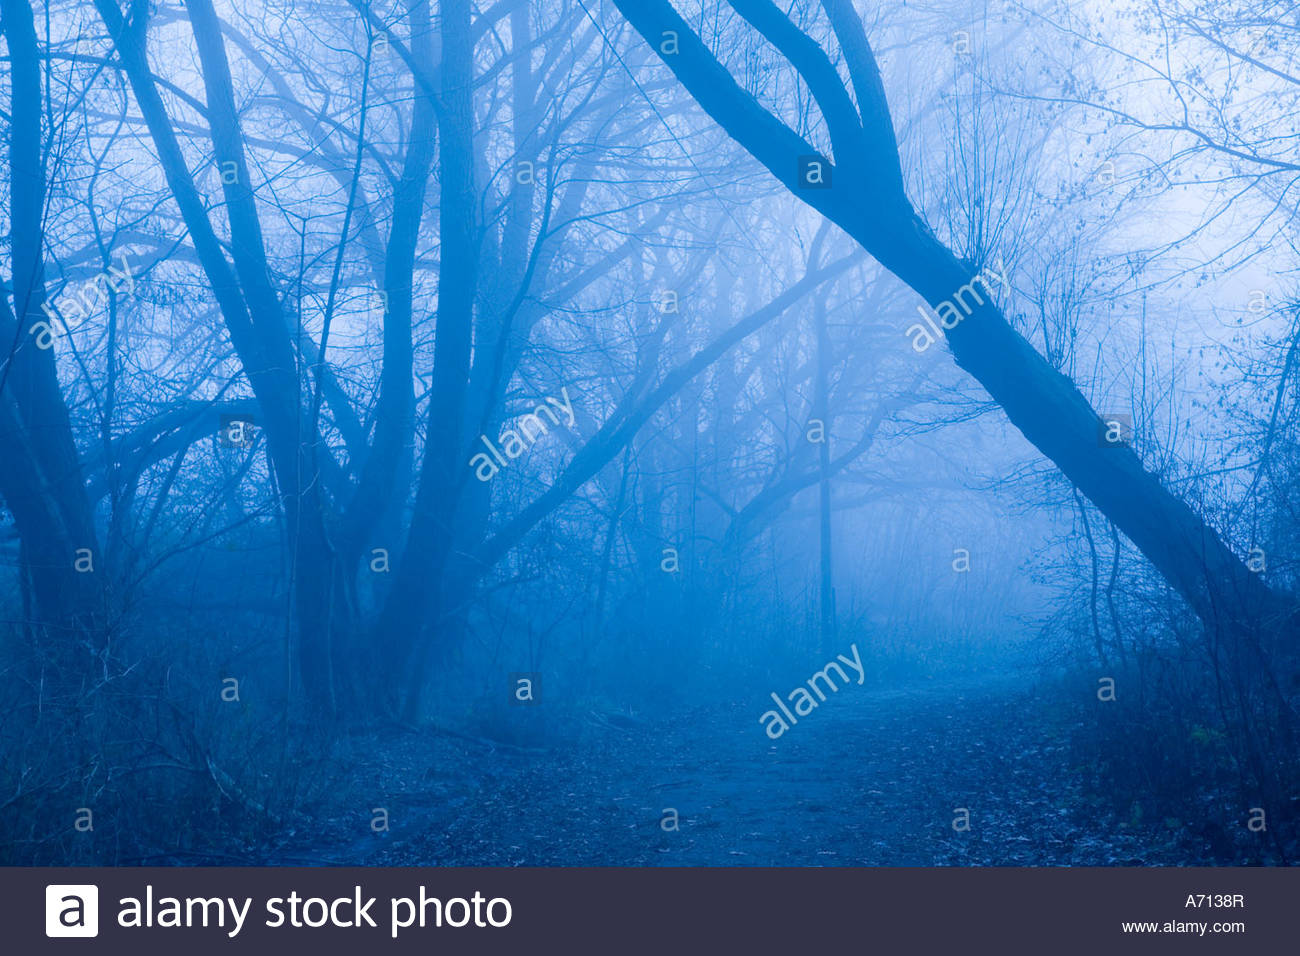 Fog in Bluffers Park located in the Scarborough area of Toronto Ontario Canada Stock Photo